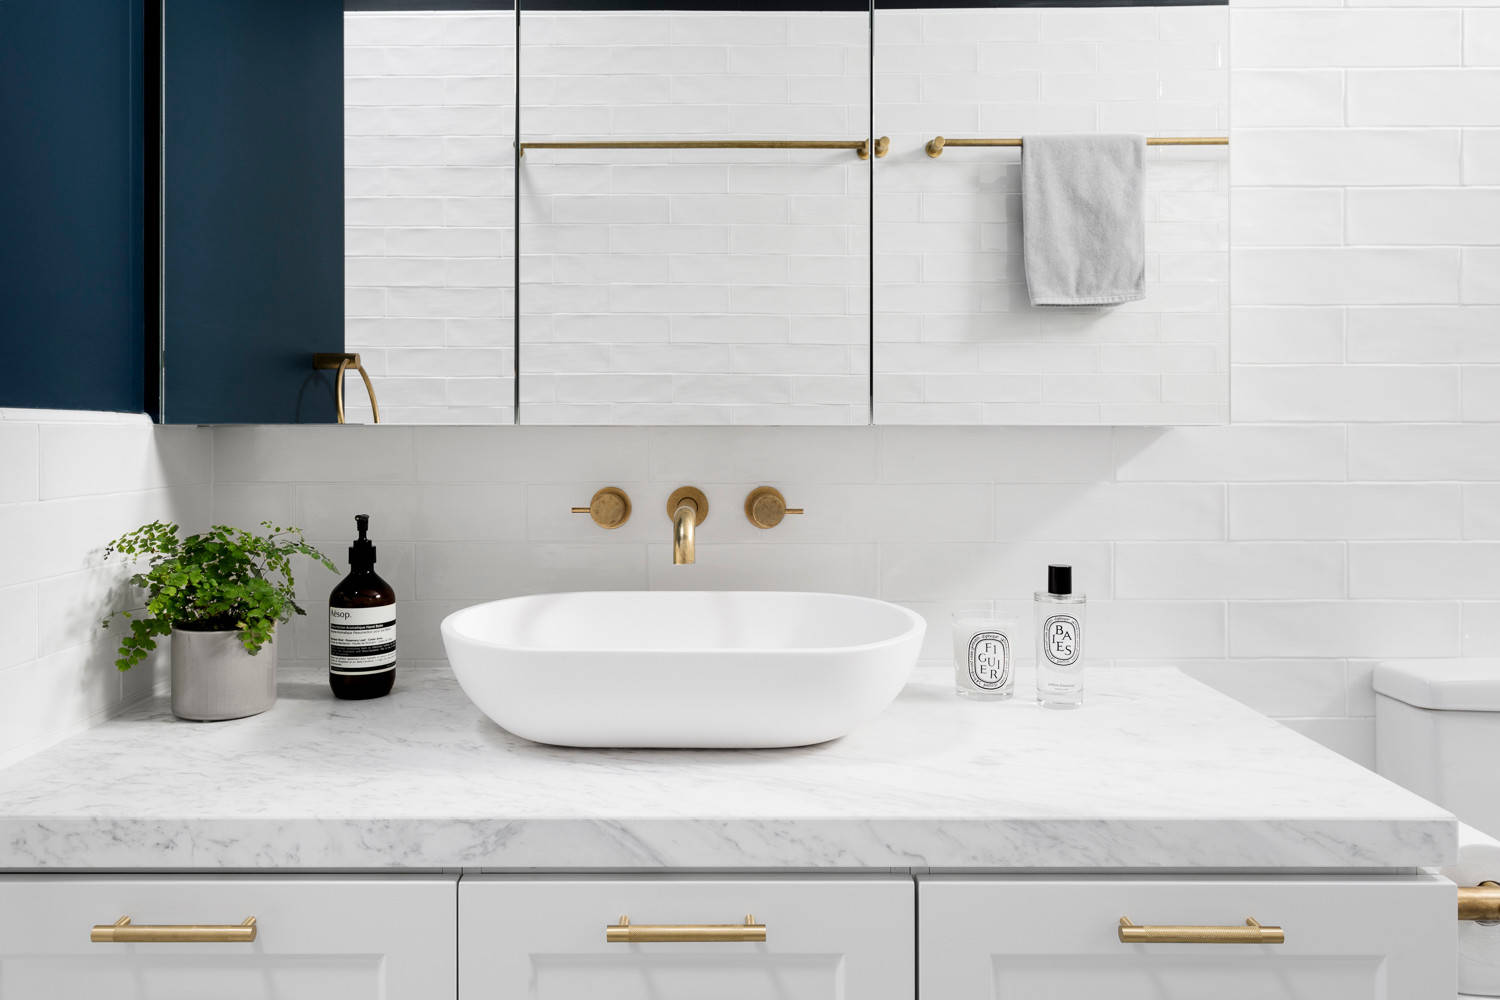 Selecting The Stylish Bathroom Tapware In Sydney Will Change The Overall Look Of Your Space